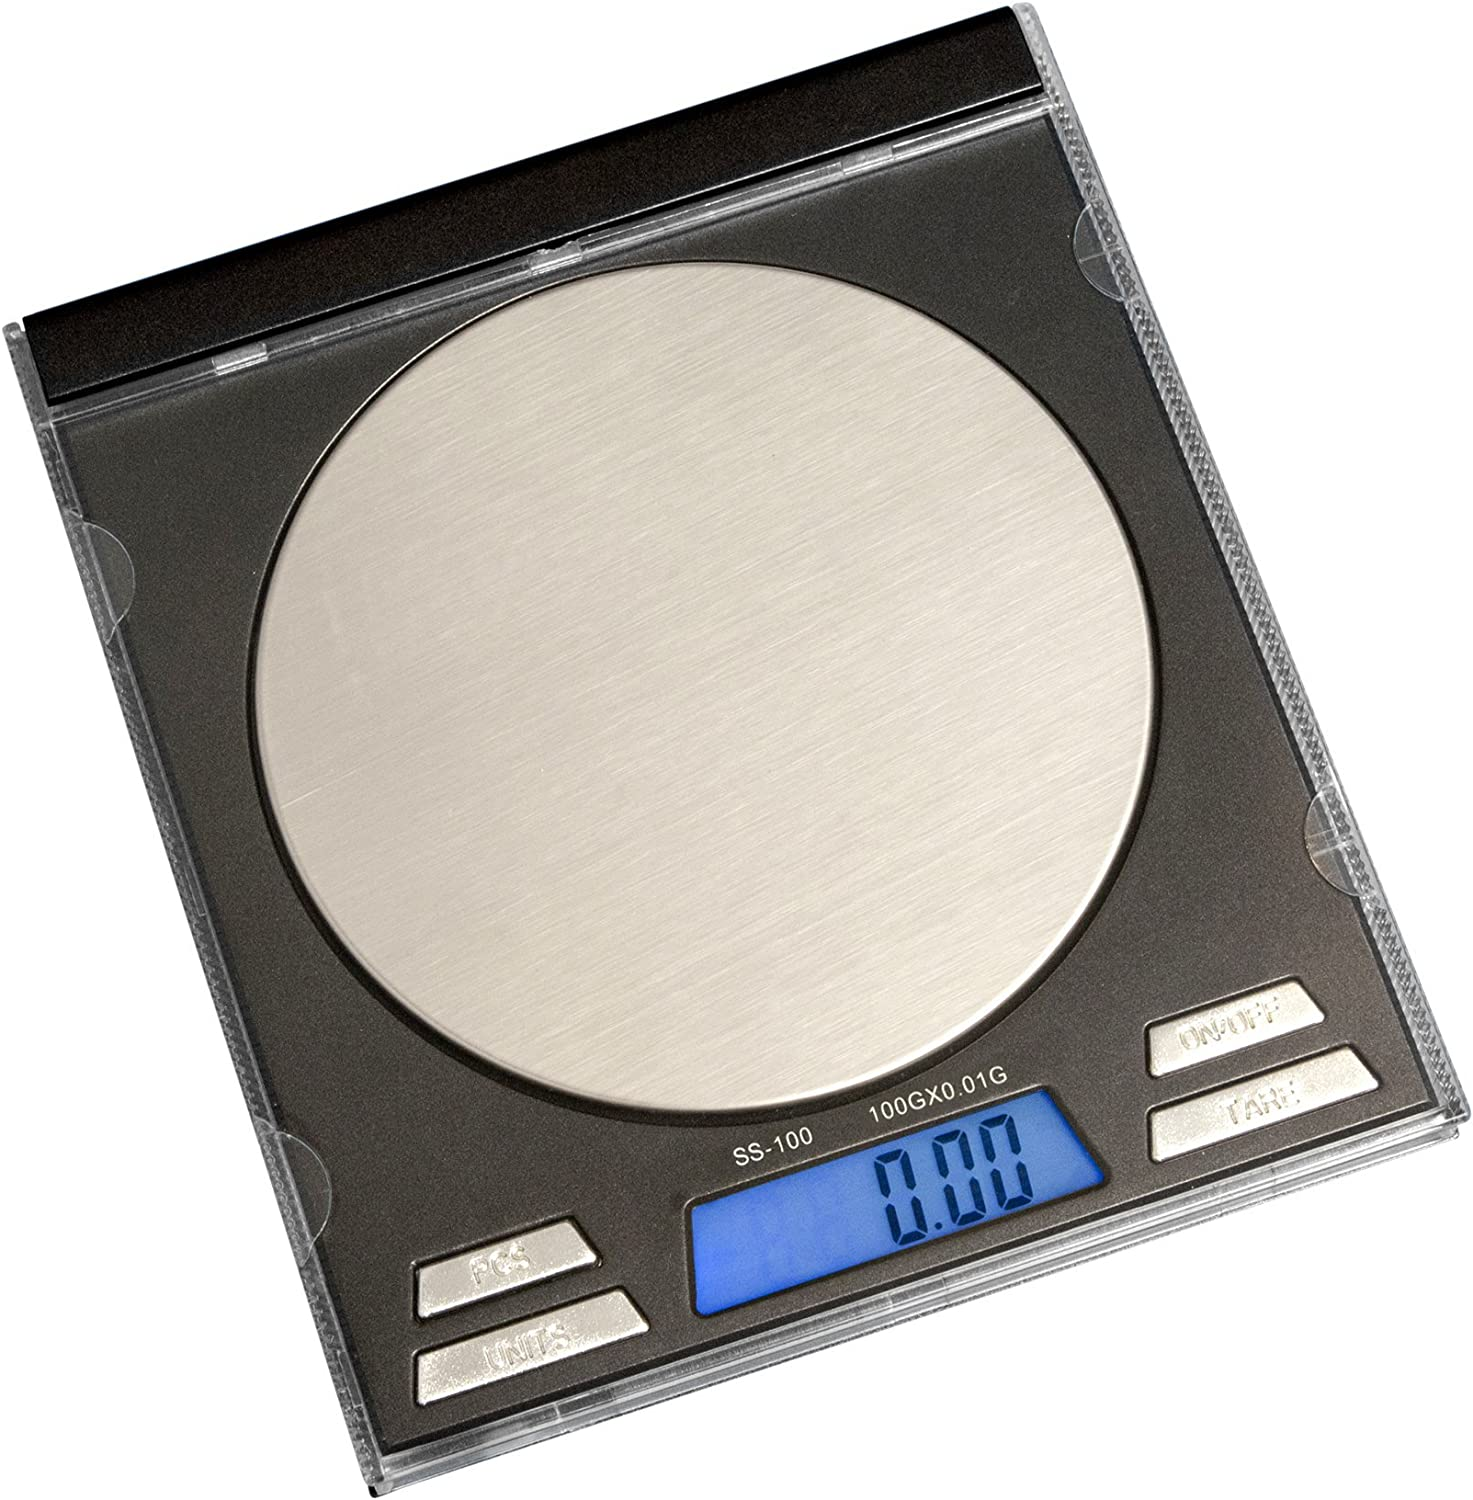 on balance square scale 100g x 0.01g